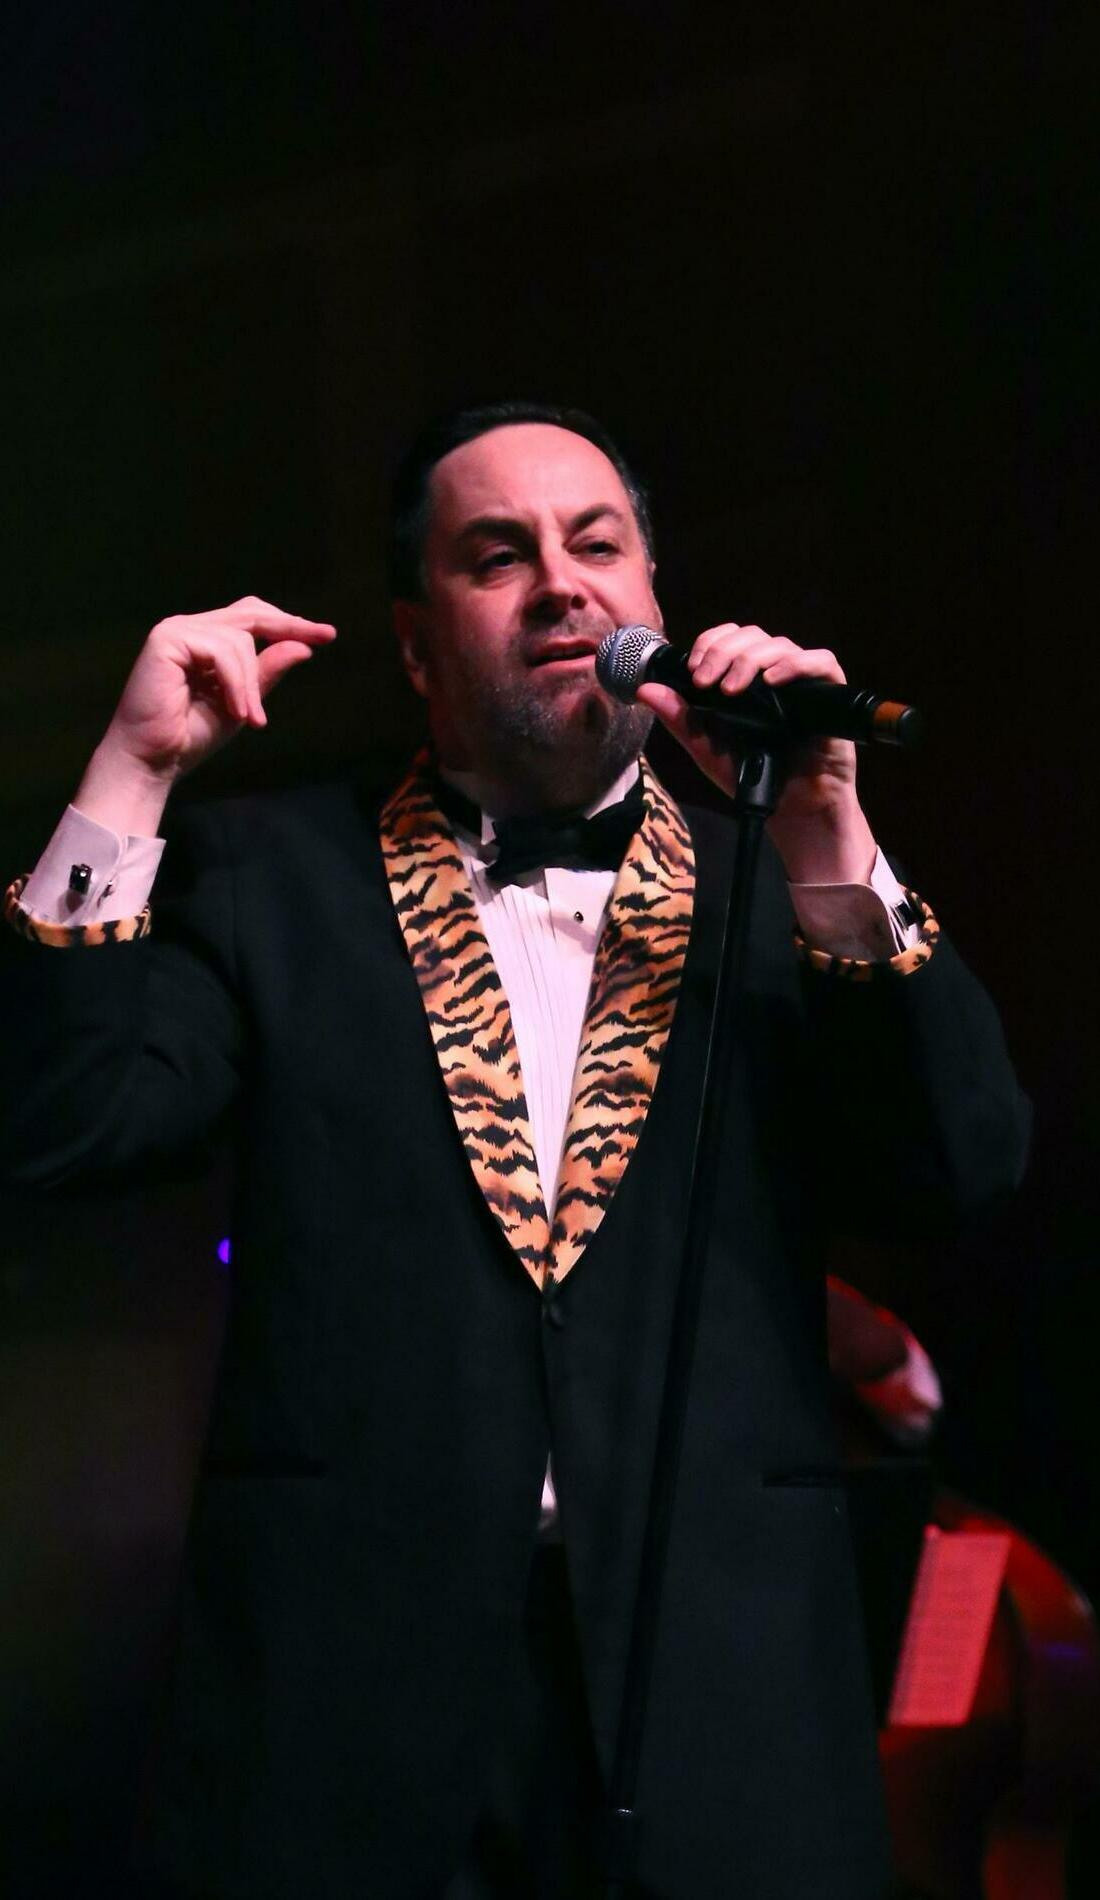 A Richard Cheese live event